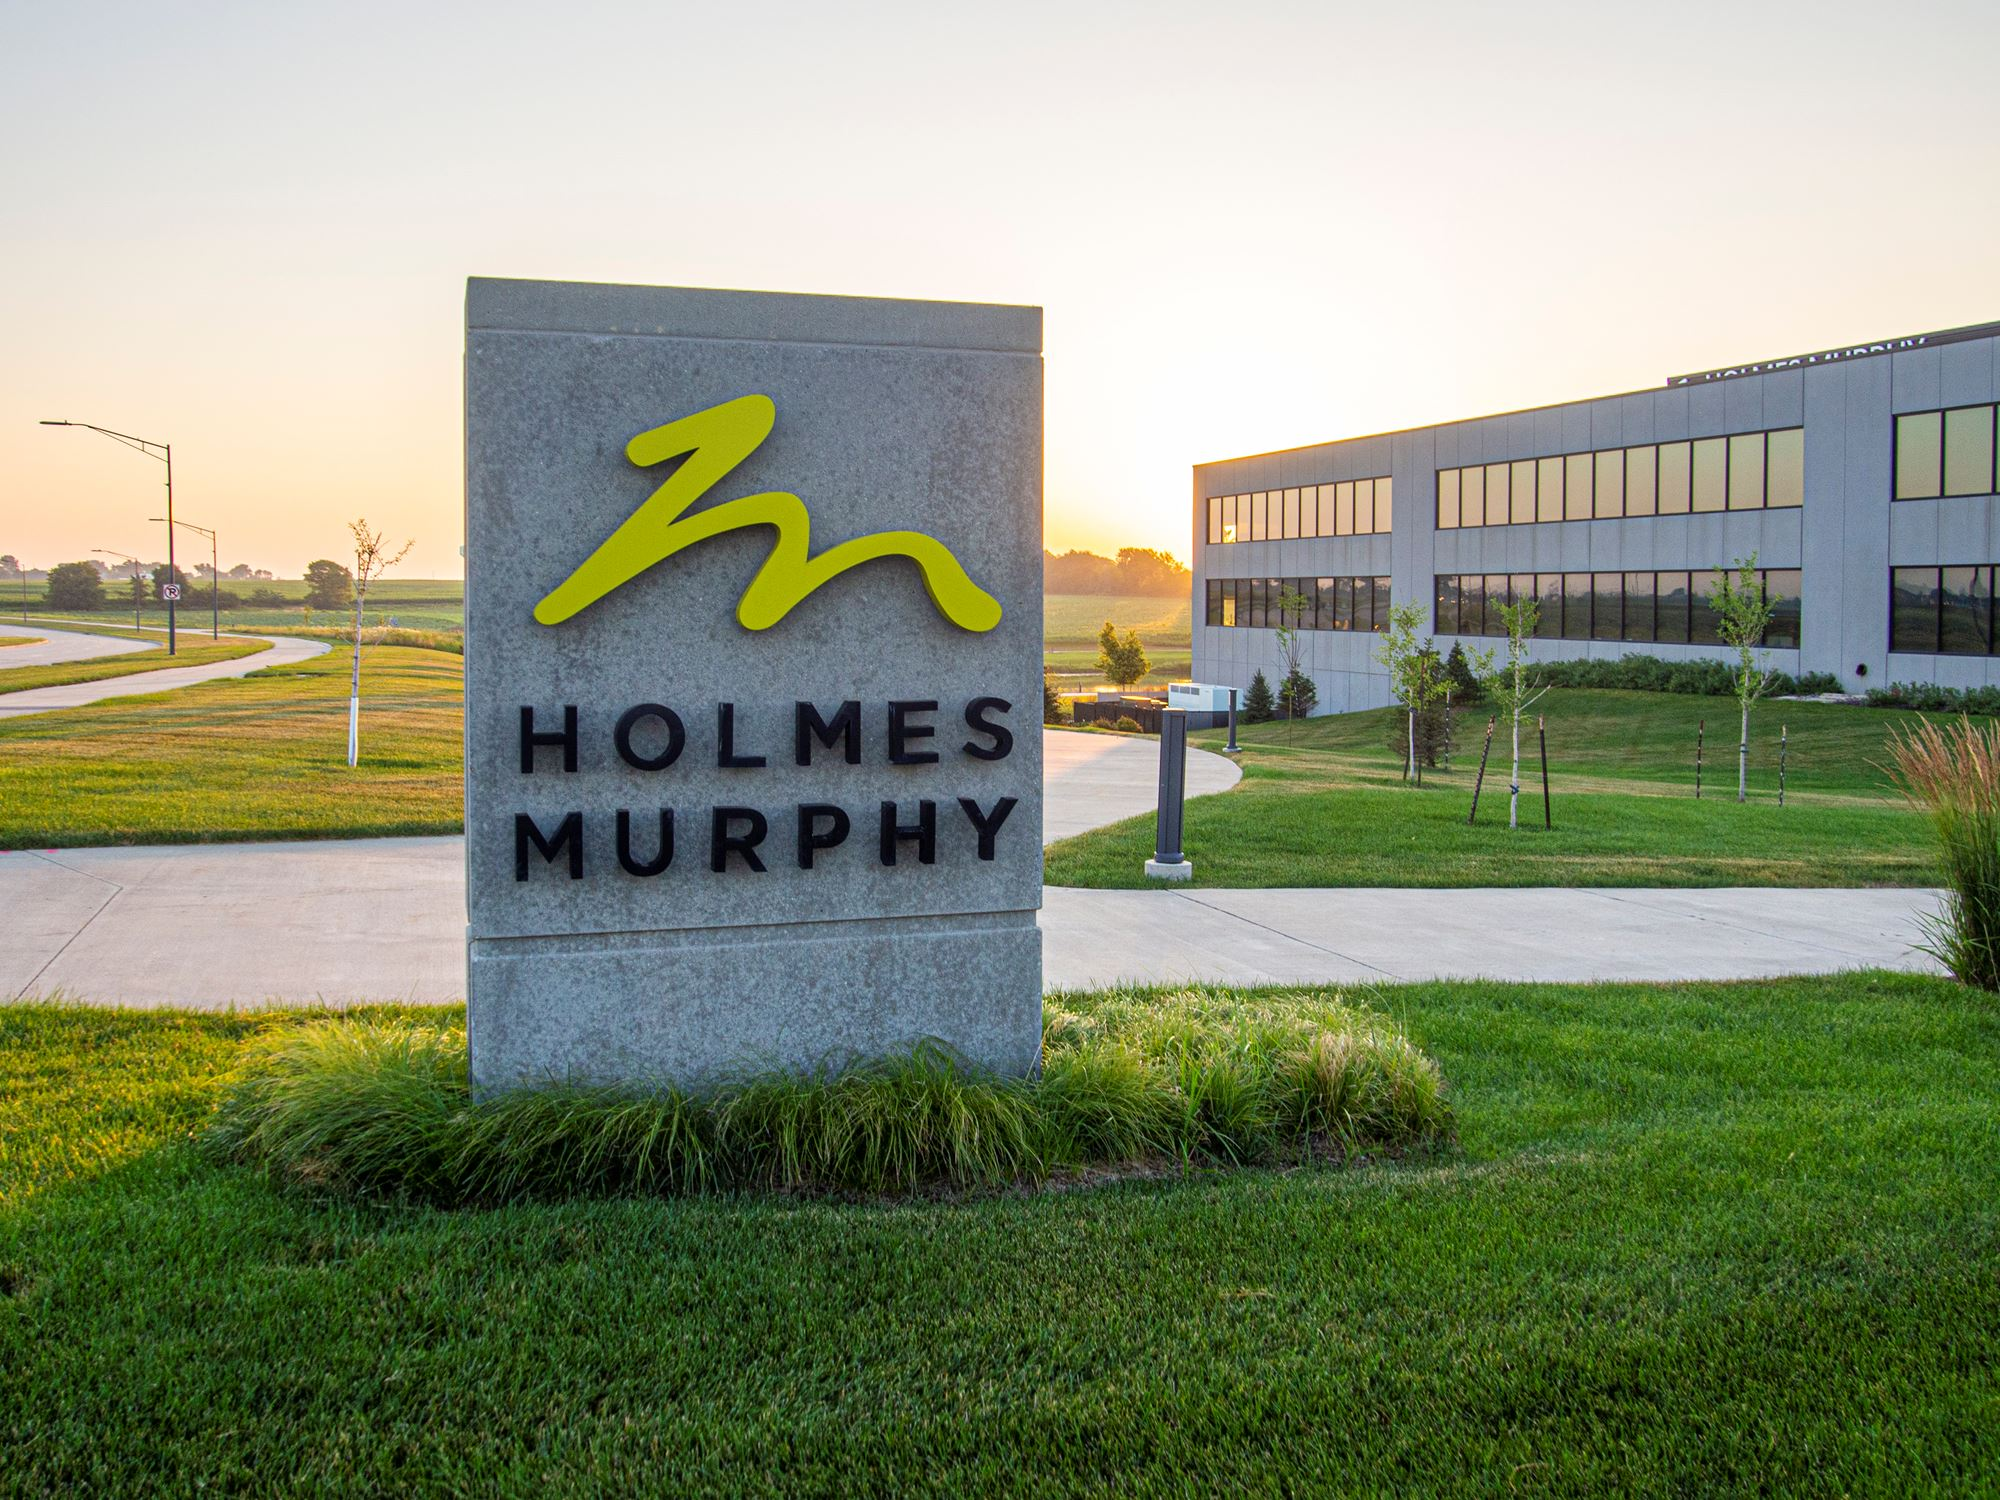 Holmes Murphy Corporate HQ